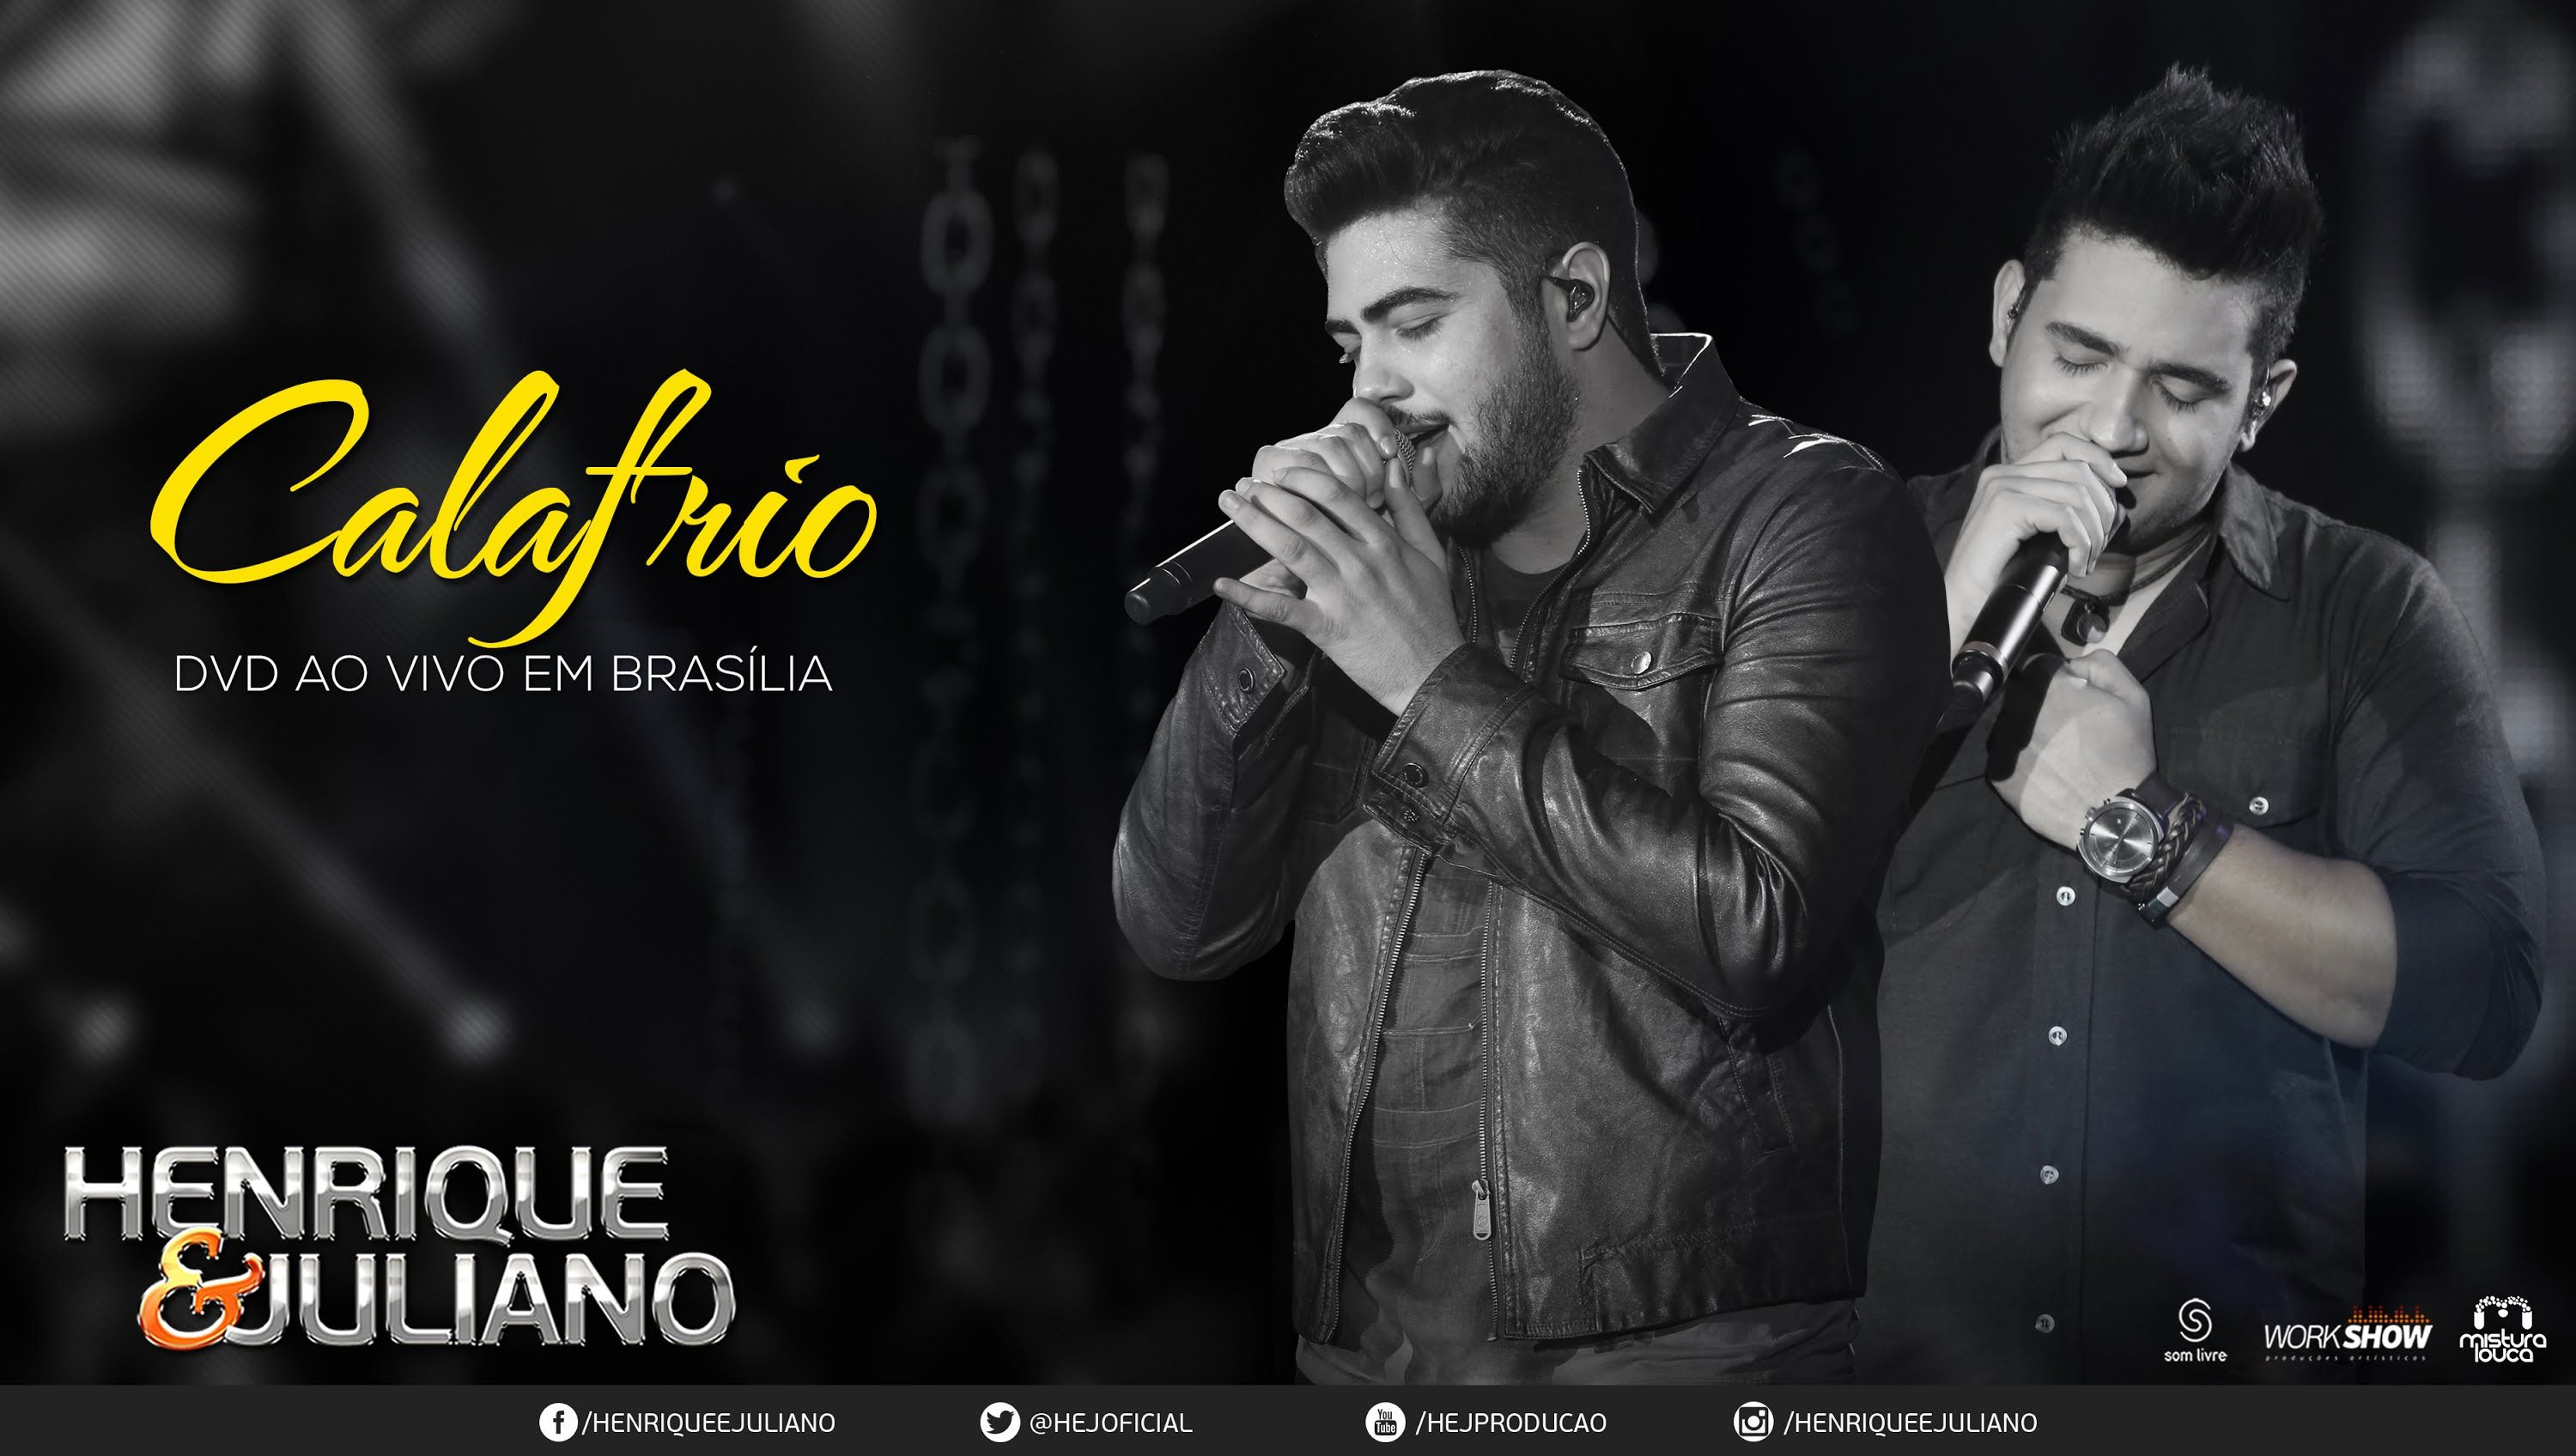 Henrique E Juliano Calafrio Dvd Ao Vivo Em Brasilia Video